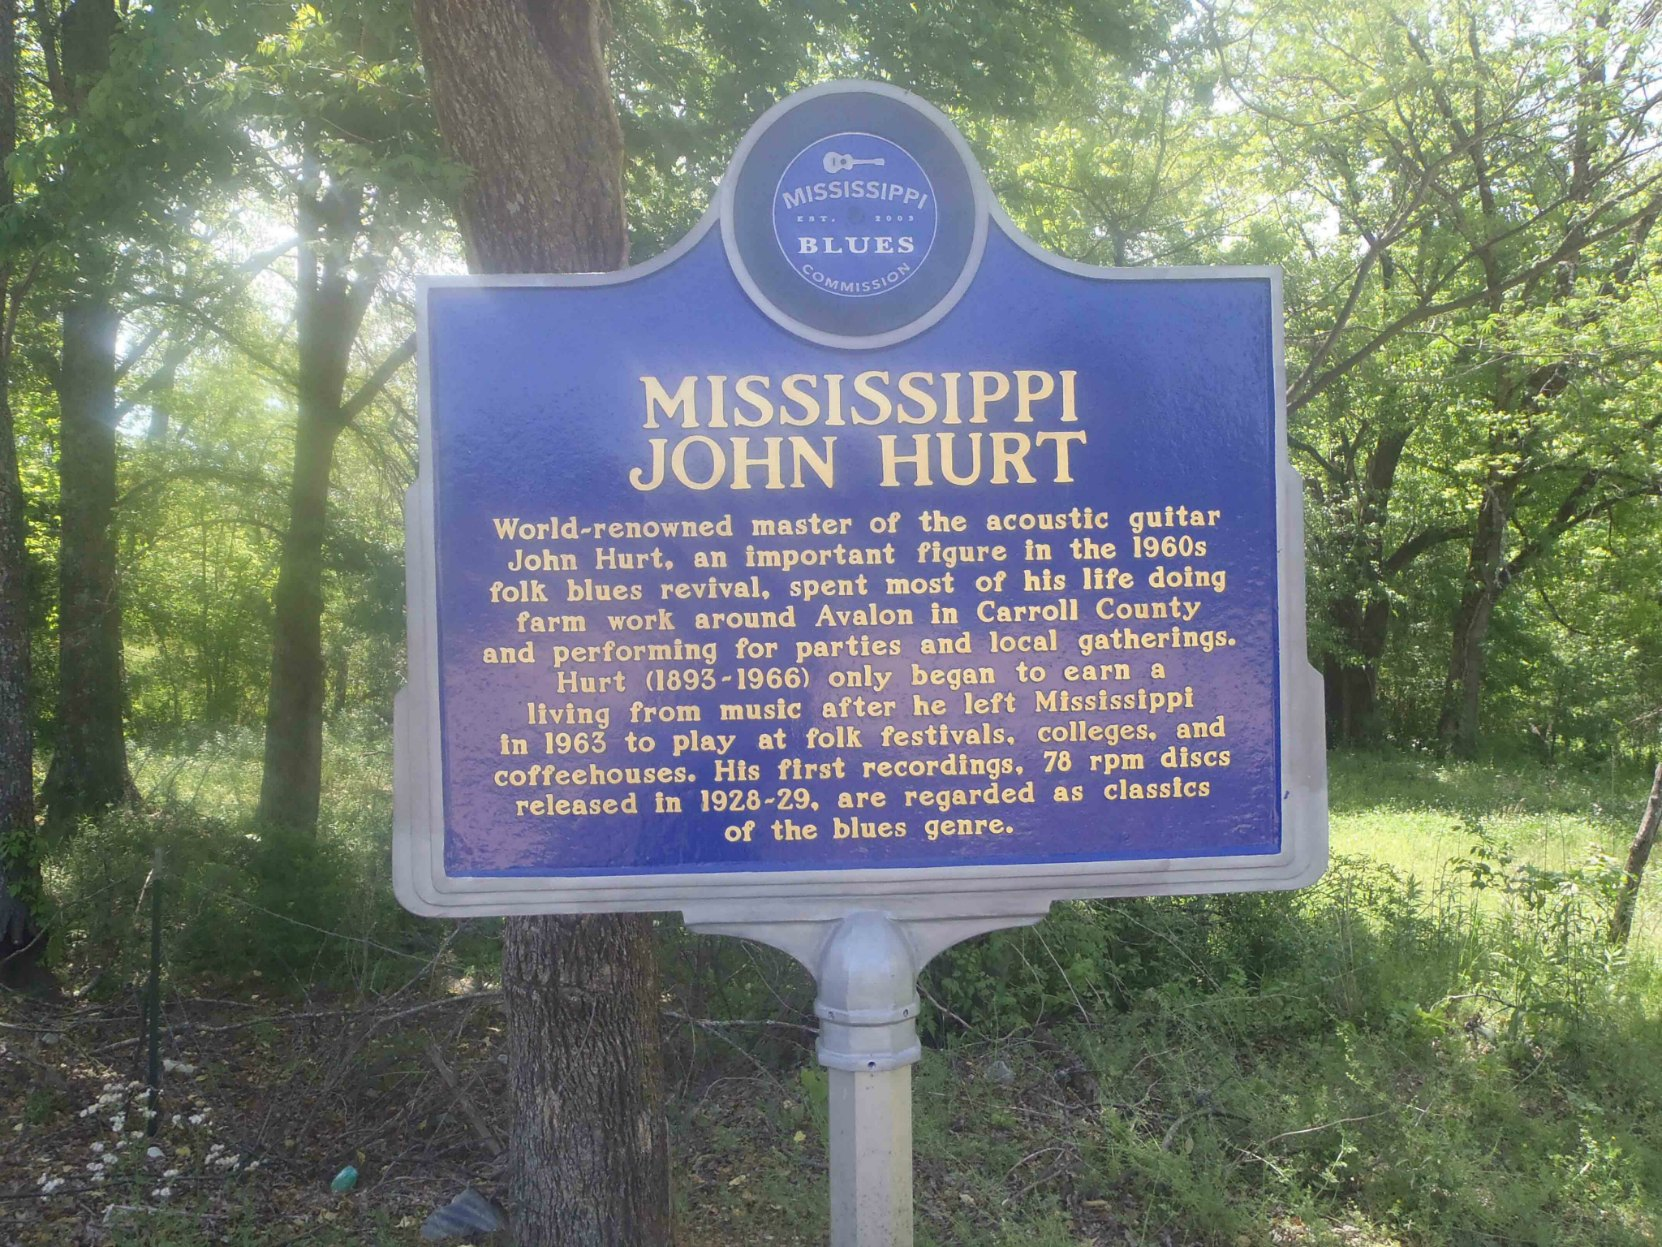 Mississippi Blues Trail marker commemorating Mississippi John Hurt, Avalon, Mississippi